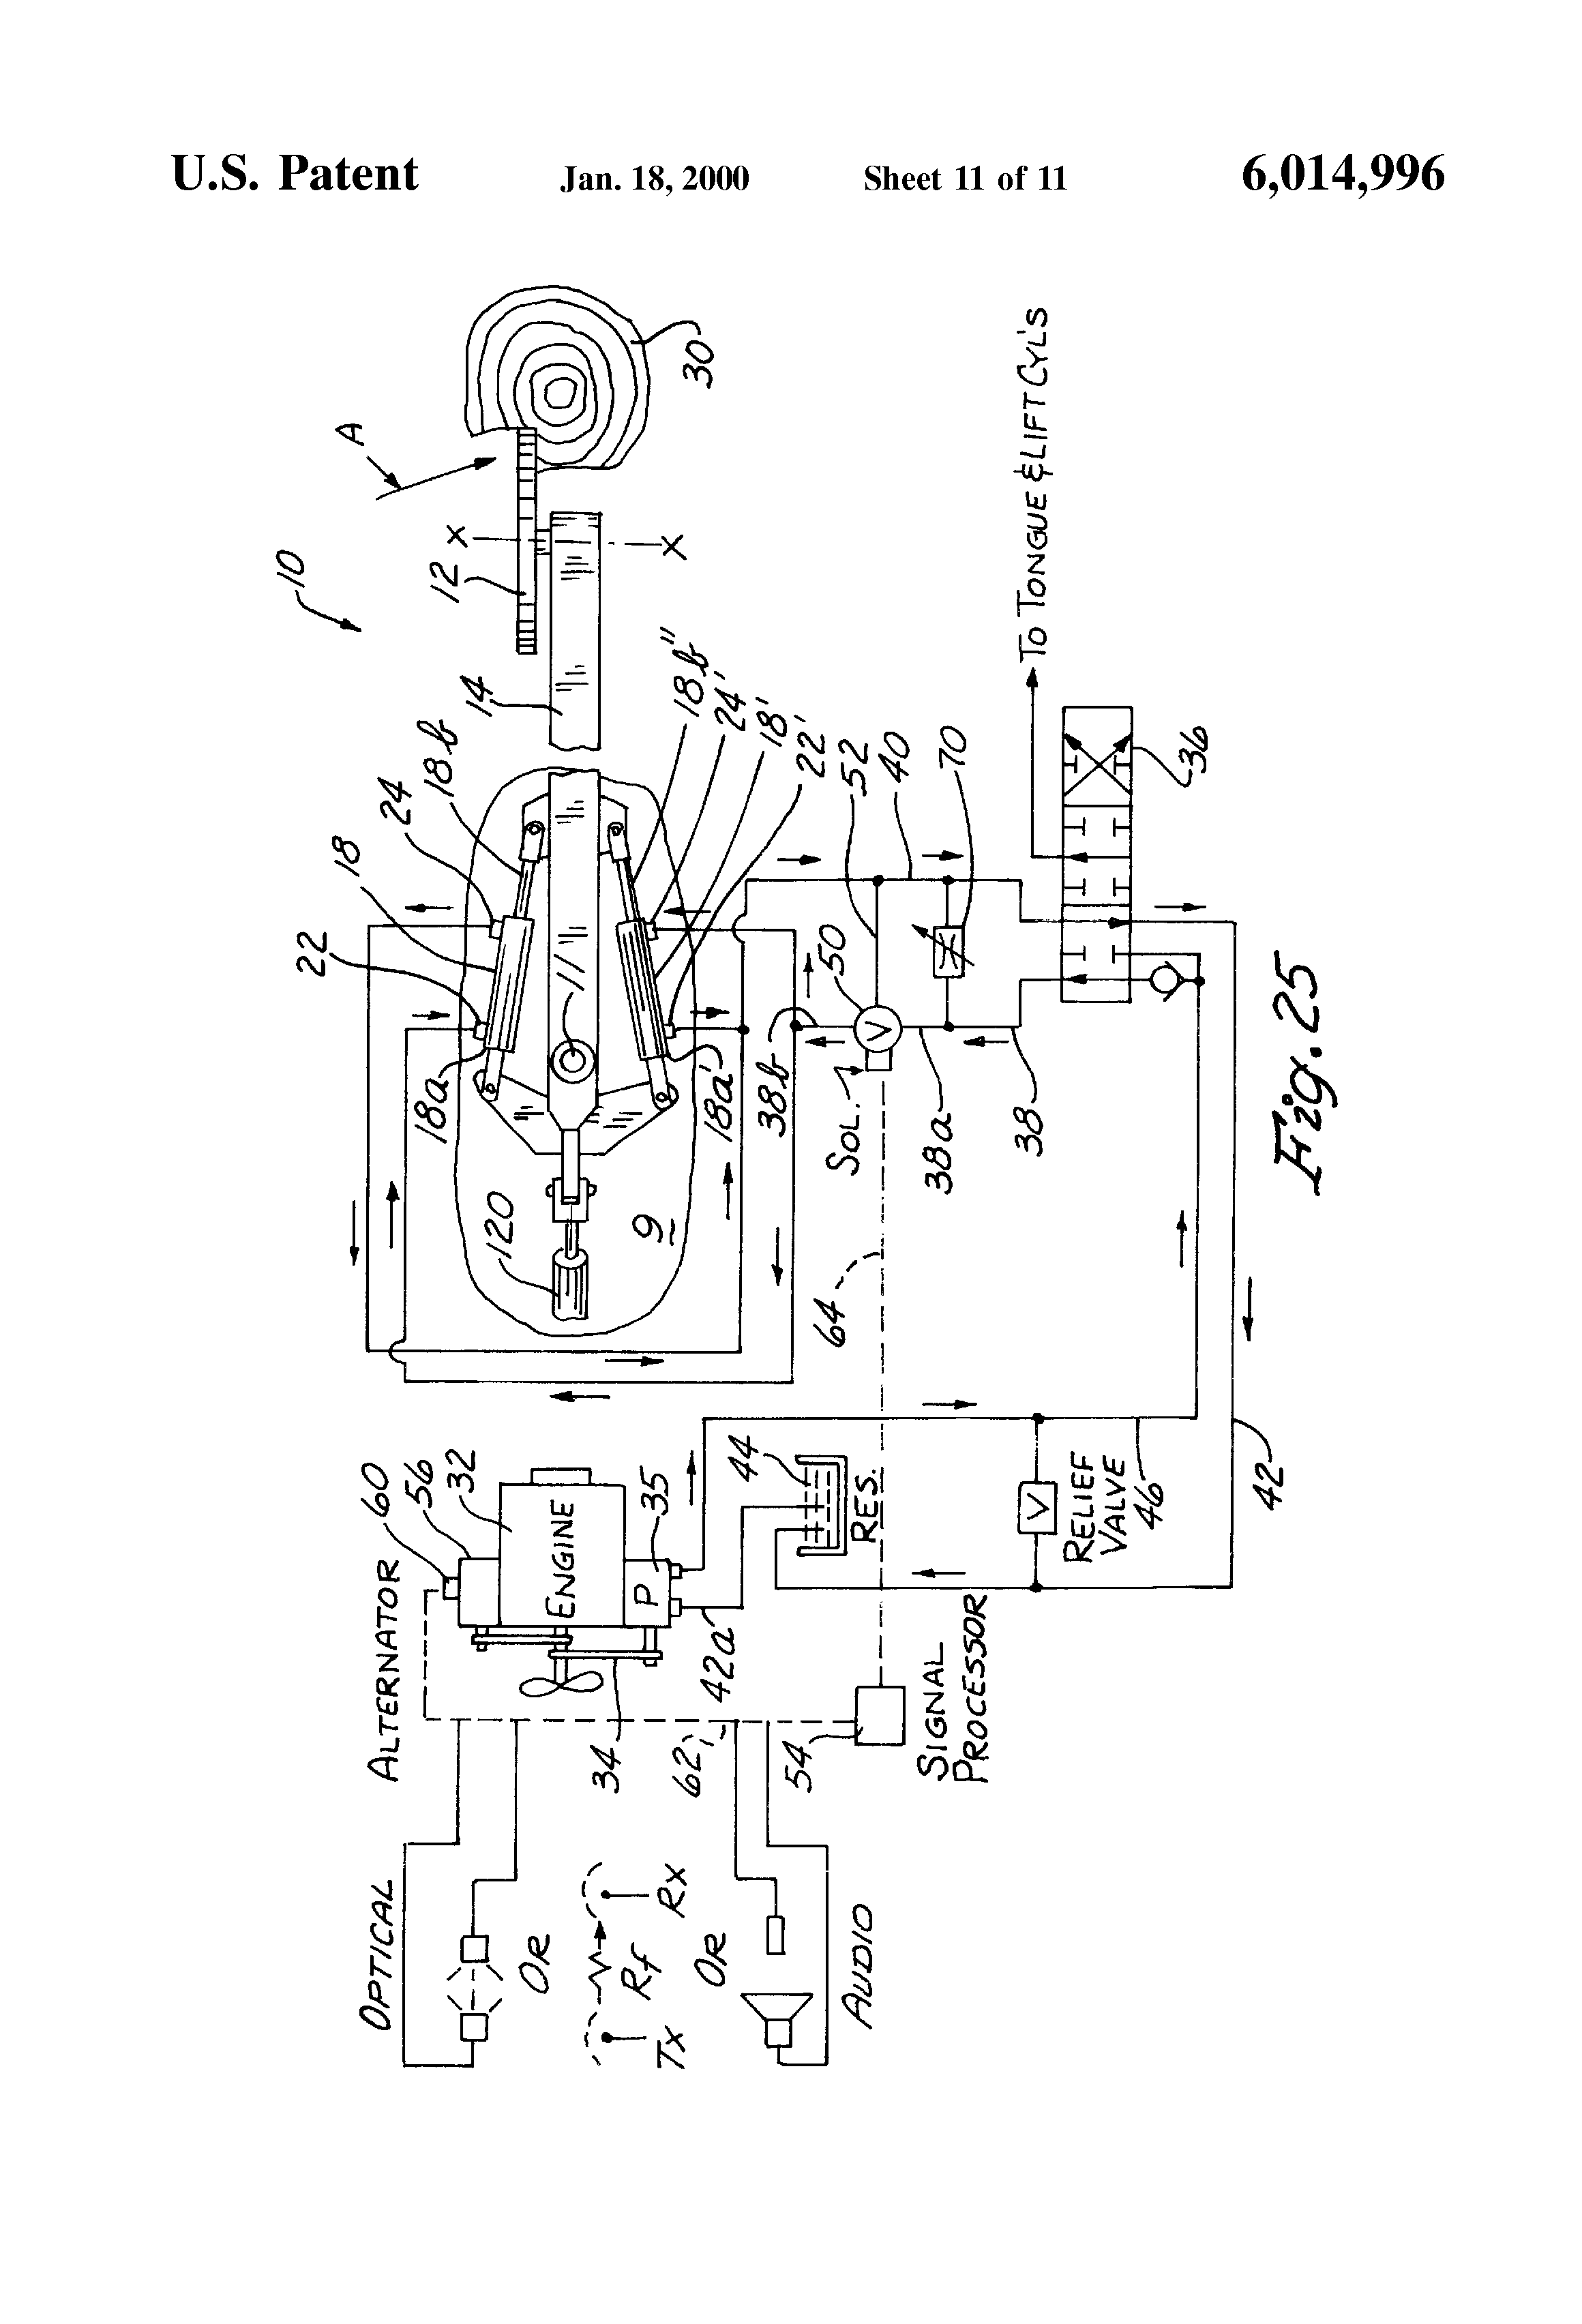 Grinder Wiring Diagram 22 Images Diagrams Bosch Al902x Us6014996 12 Kohler Compressor Odicis Pump At